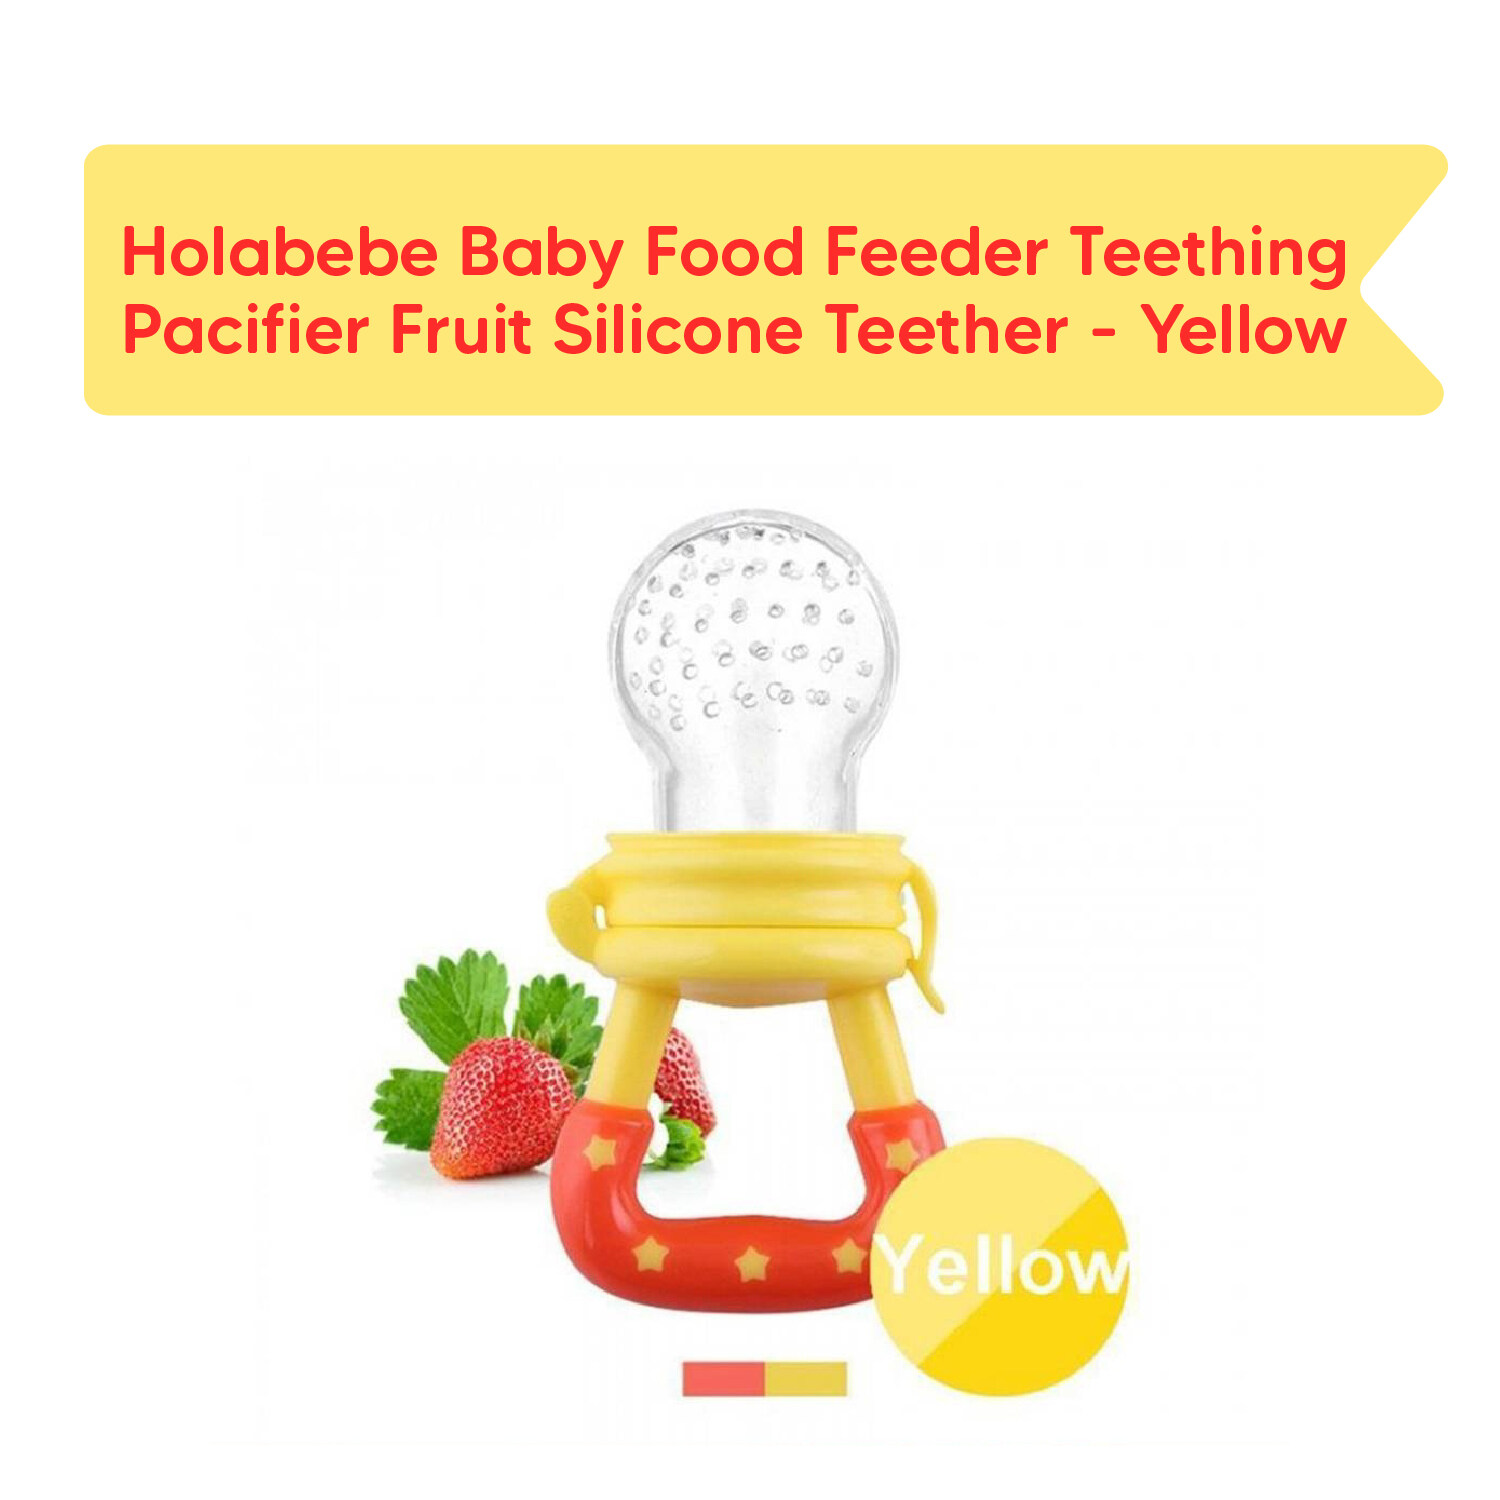 Holabebe - Baby food feeder teething pacifier fruit silicone teether (blue)